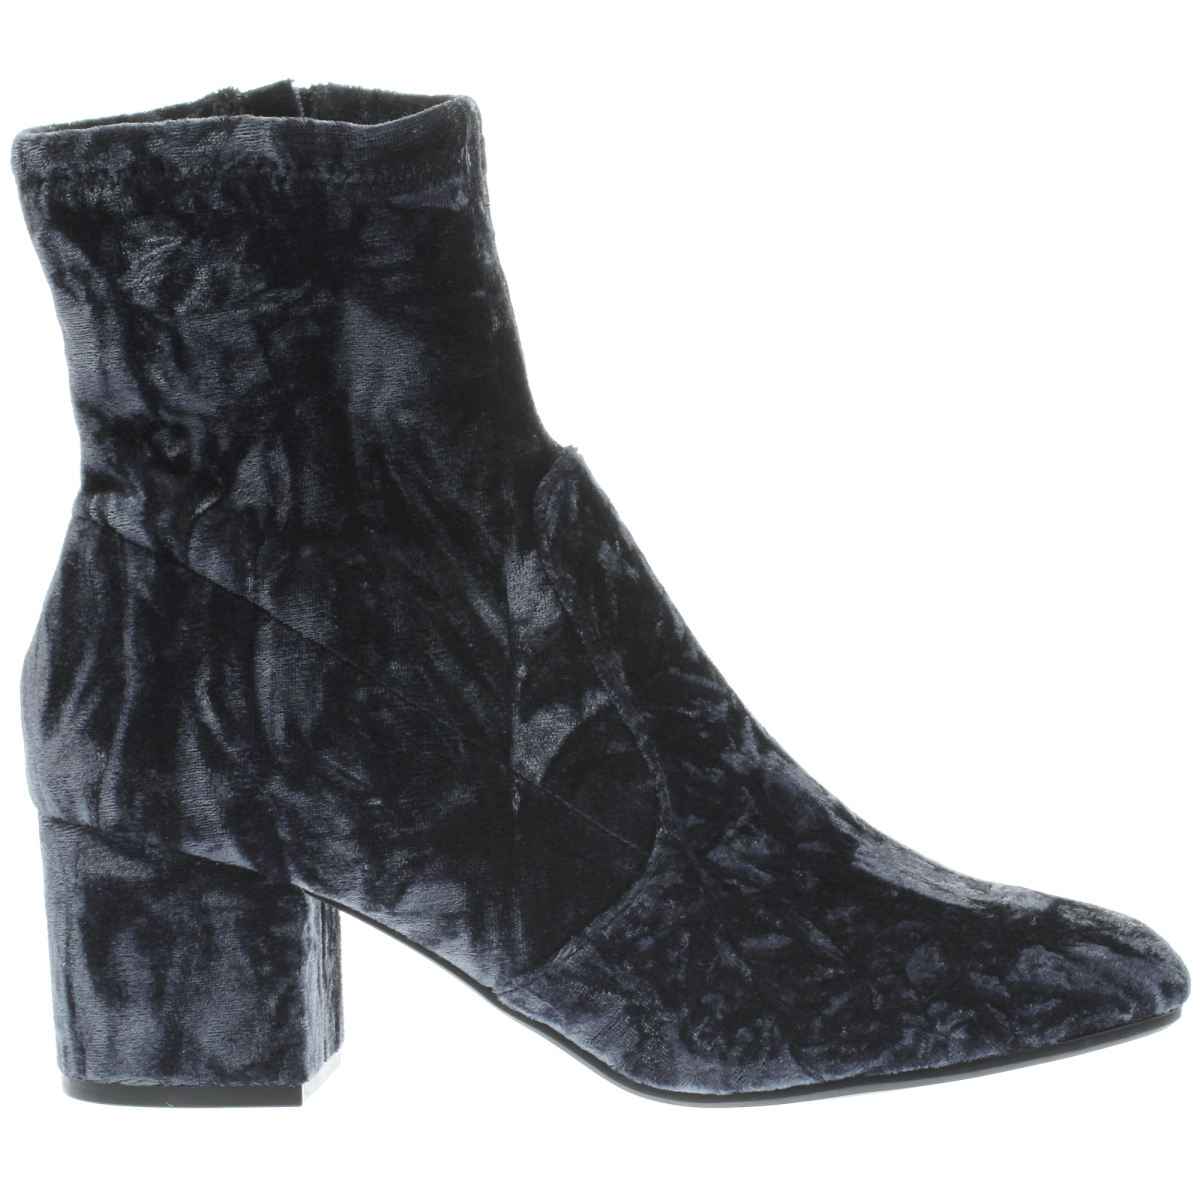 schuh blue opposites attract boots